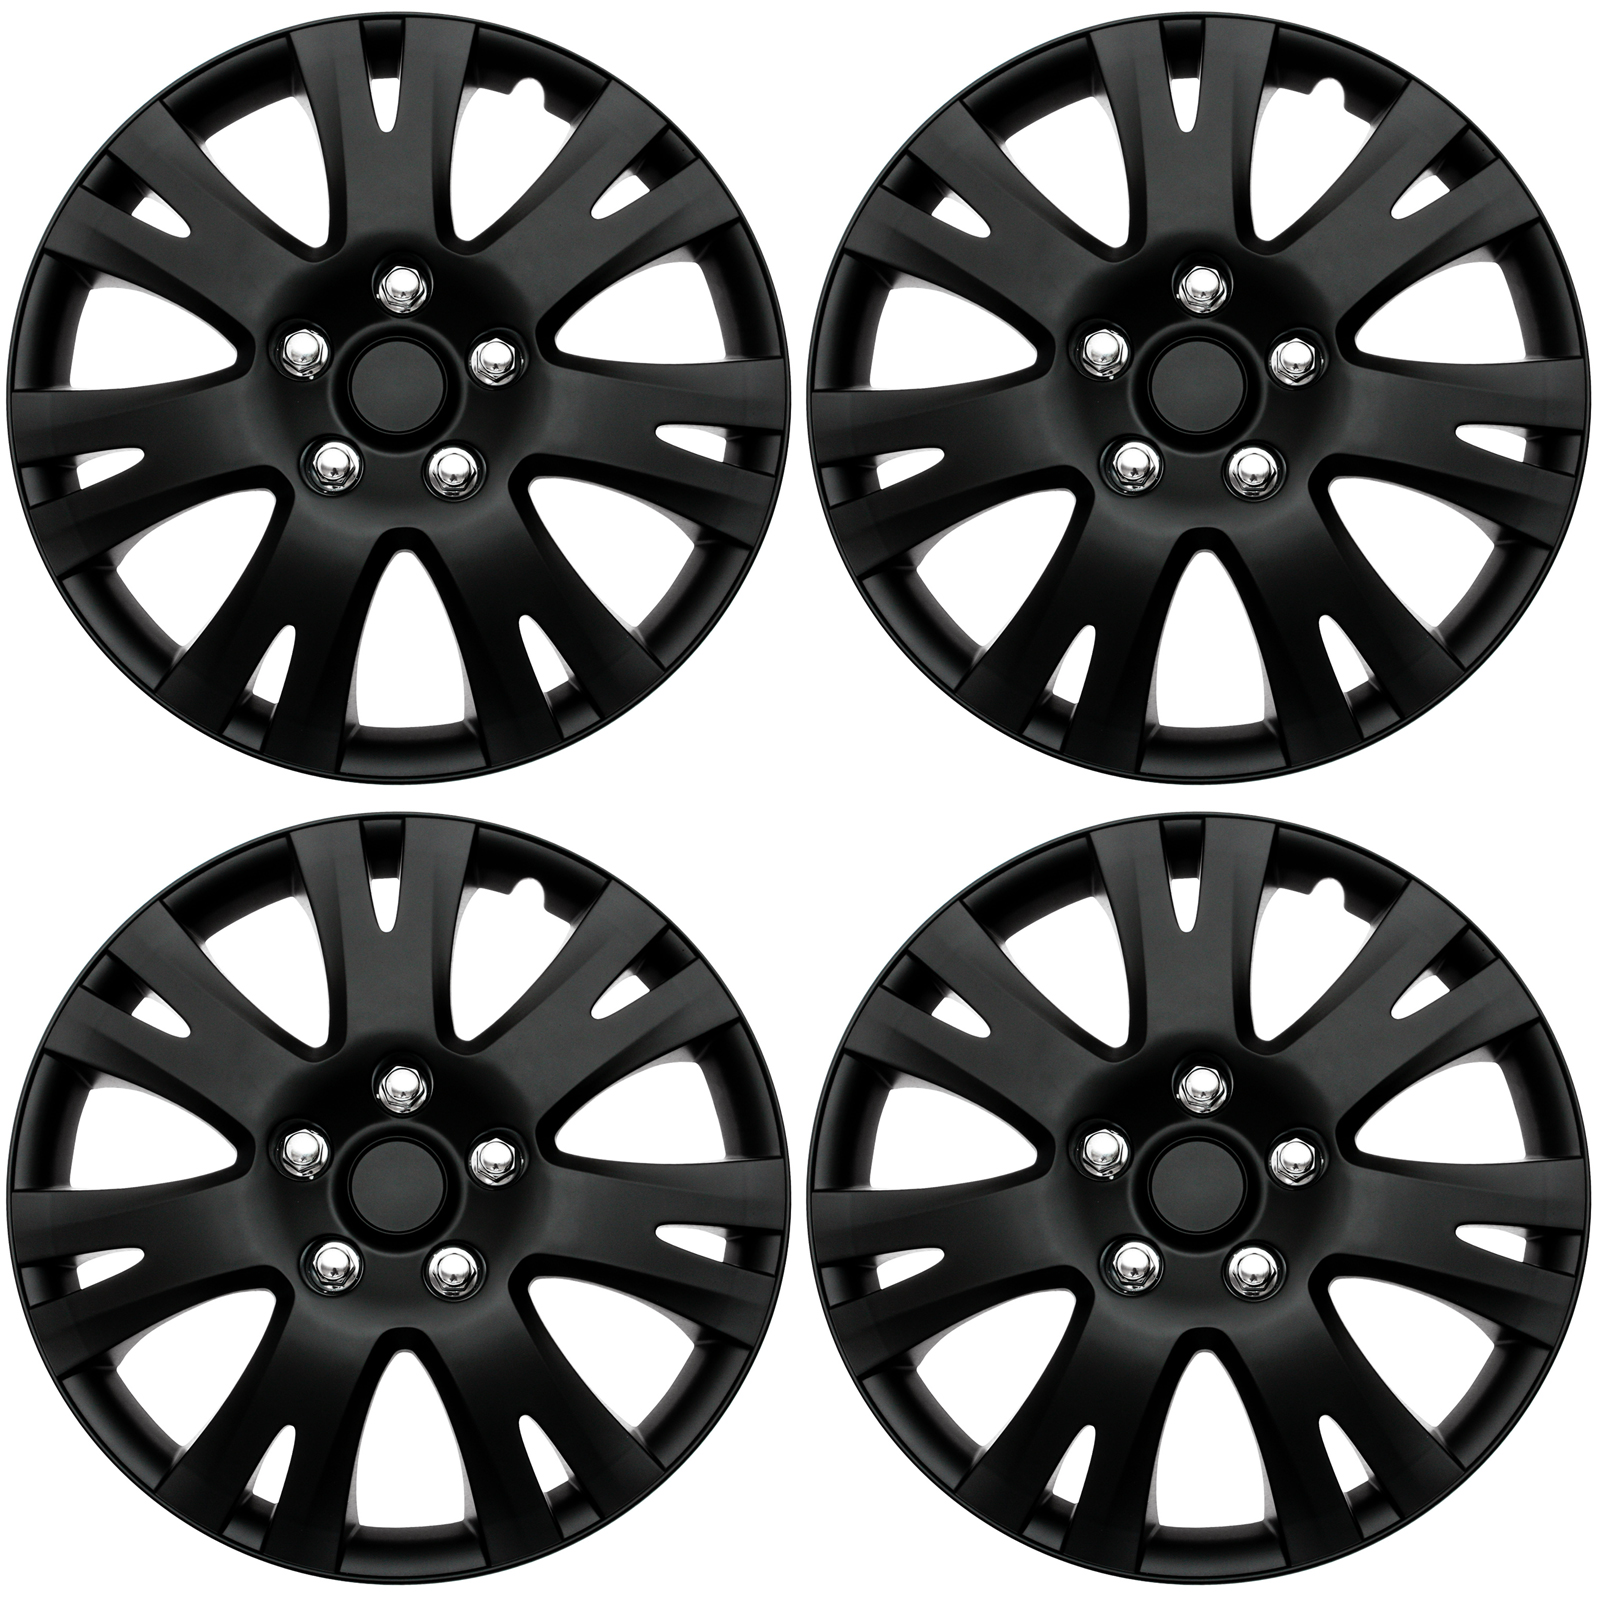 """4 PC SET Hub Cap ABS BLACK MATTE 16"""" Inch for OEM Steel Wheel Cover Caps Covers"""